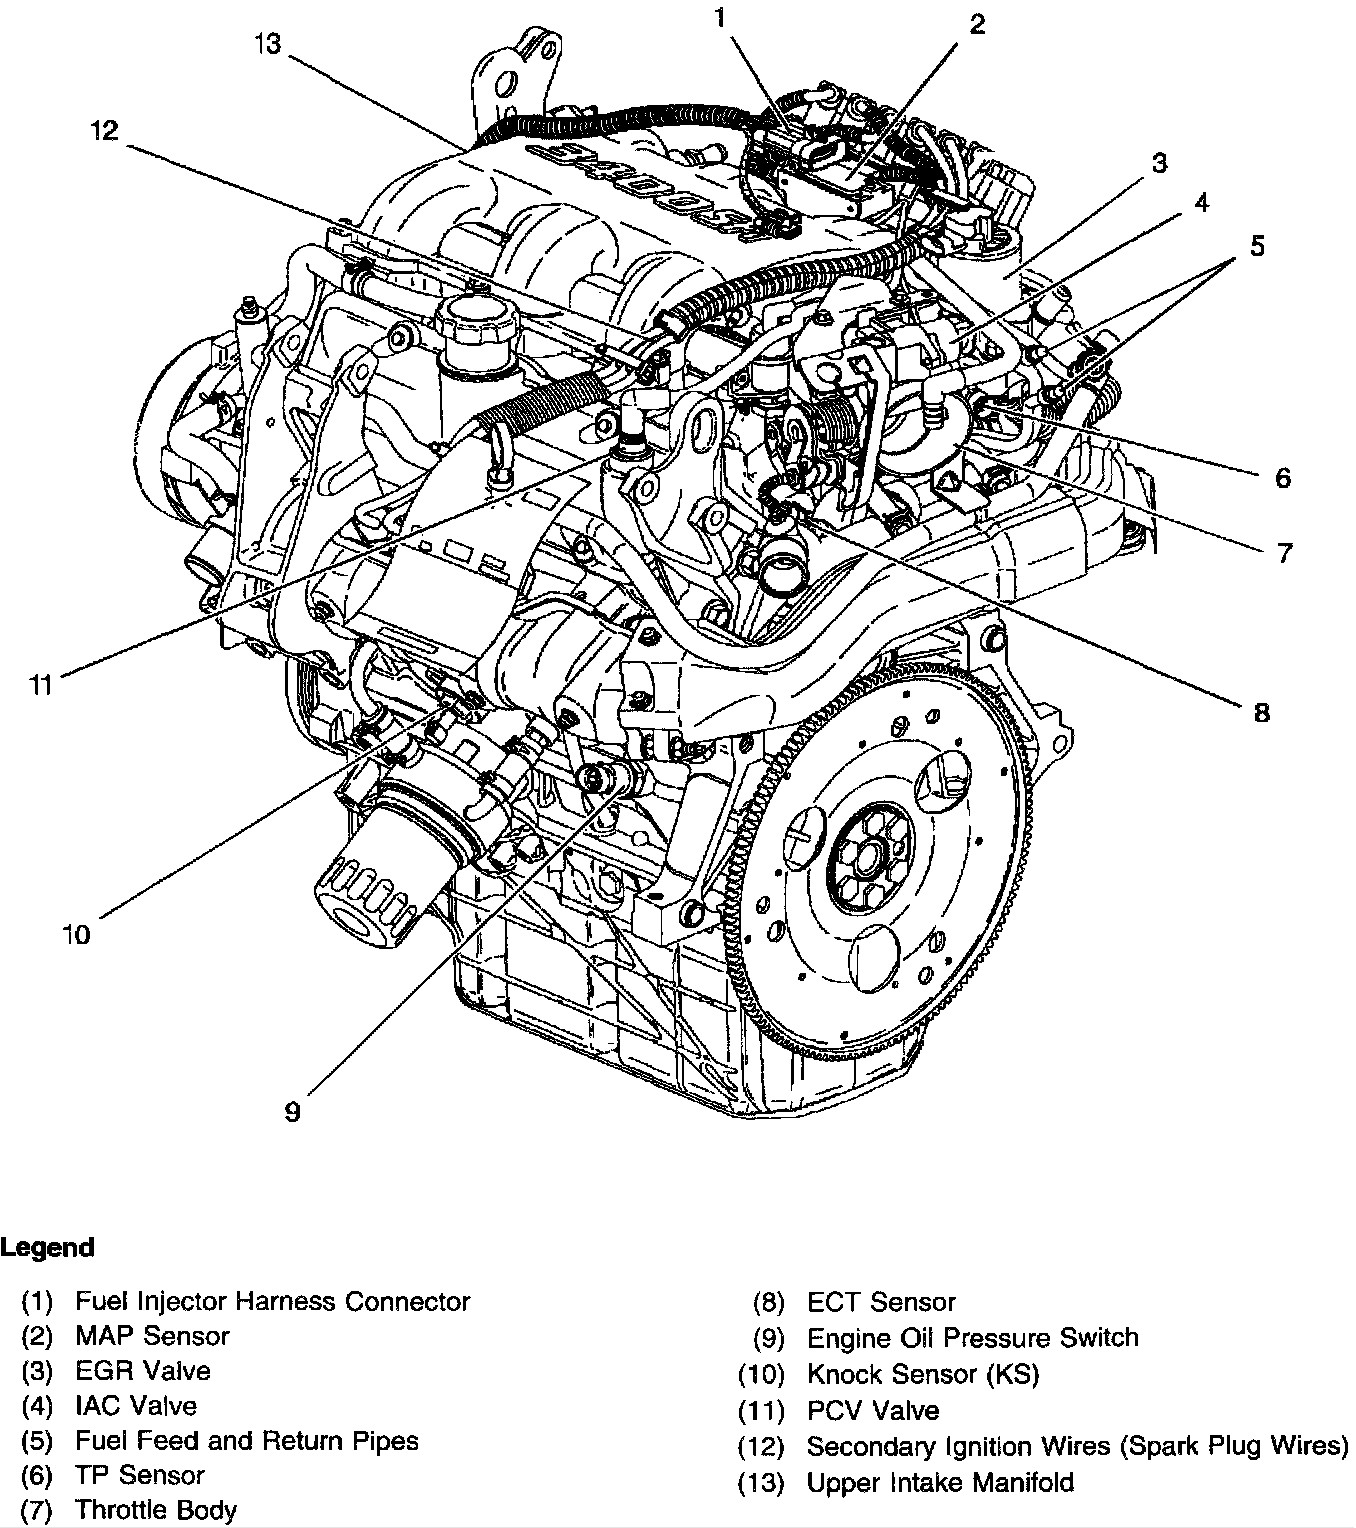 v 6 engine diagram another wiring diagrams u2022 rh benpaterson co uk 2010  chevy camaro v6 engine diagram 2001 chevy tracker v6 engine diagram